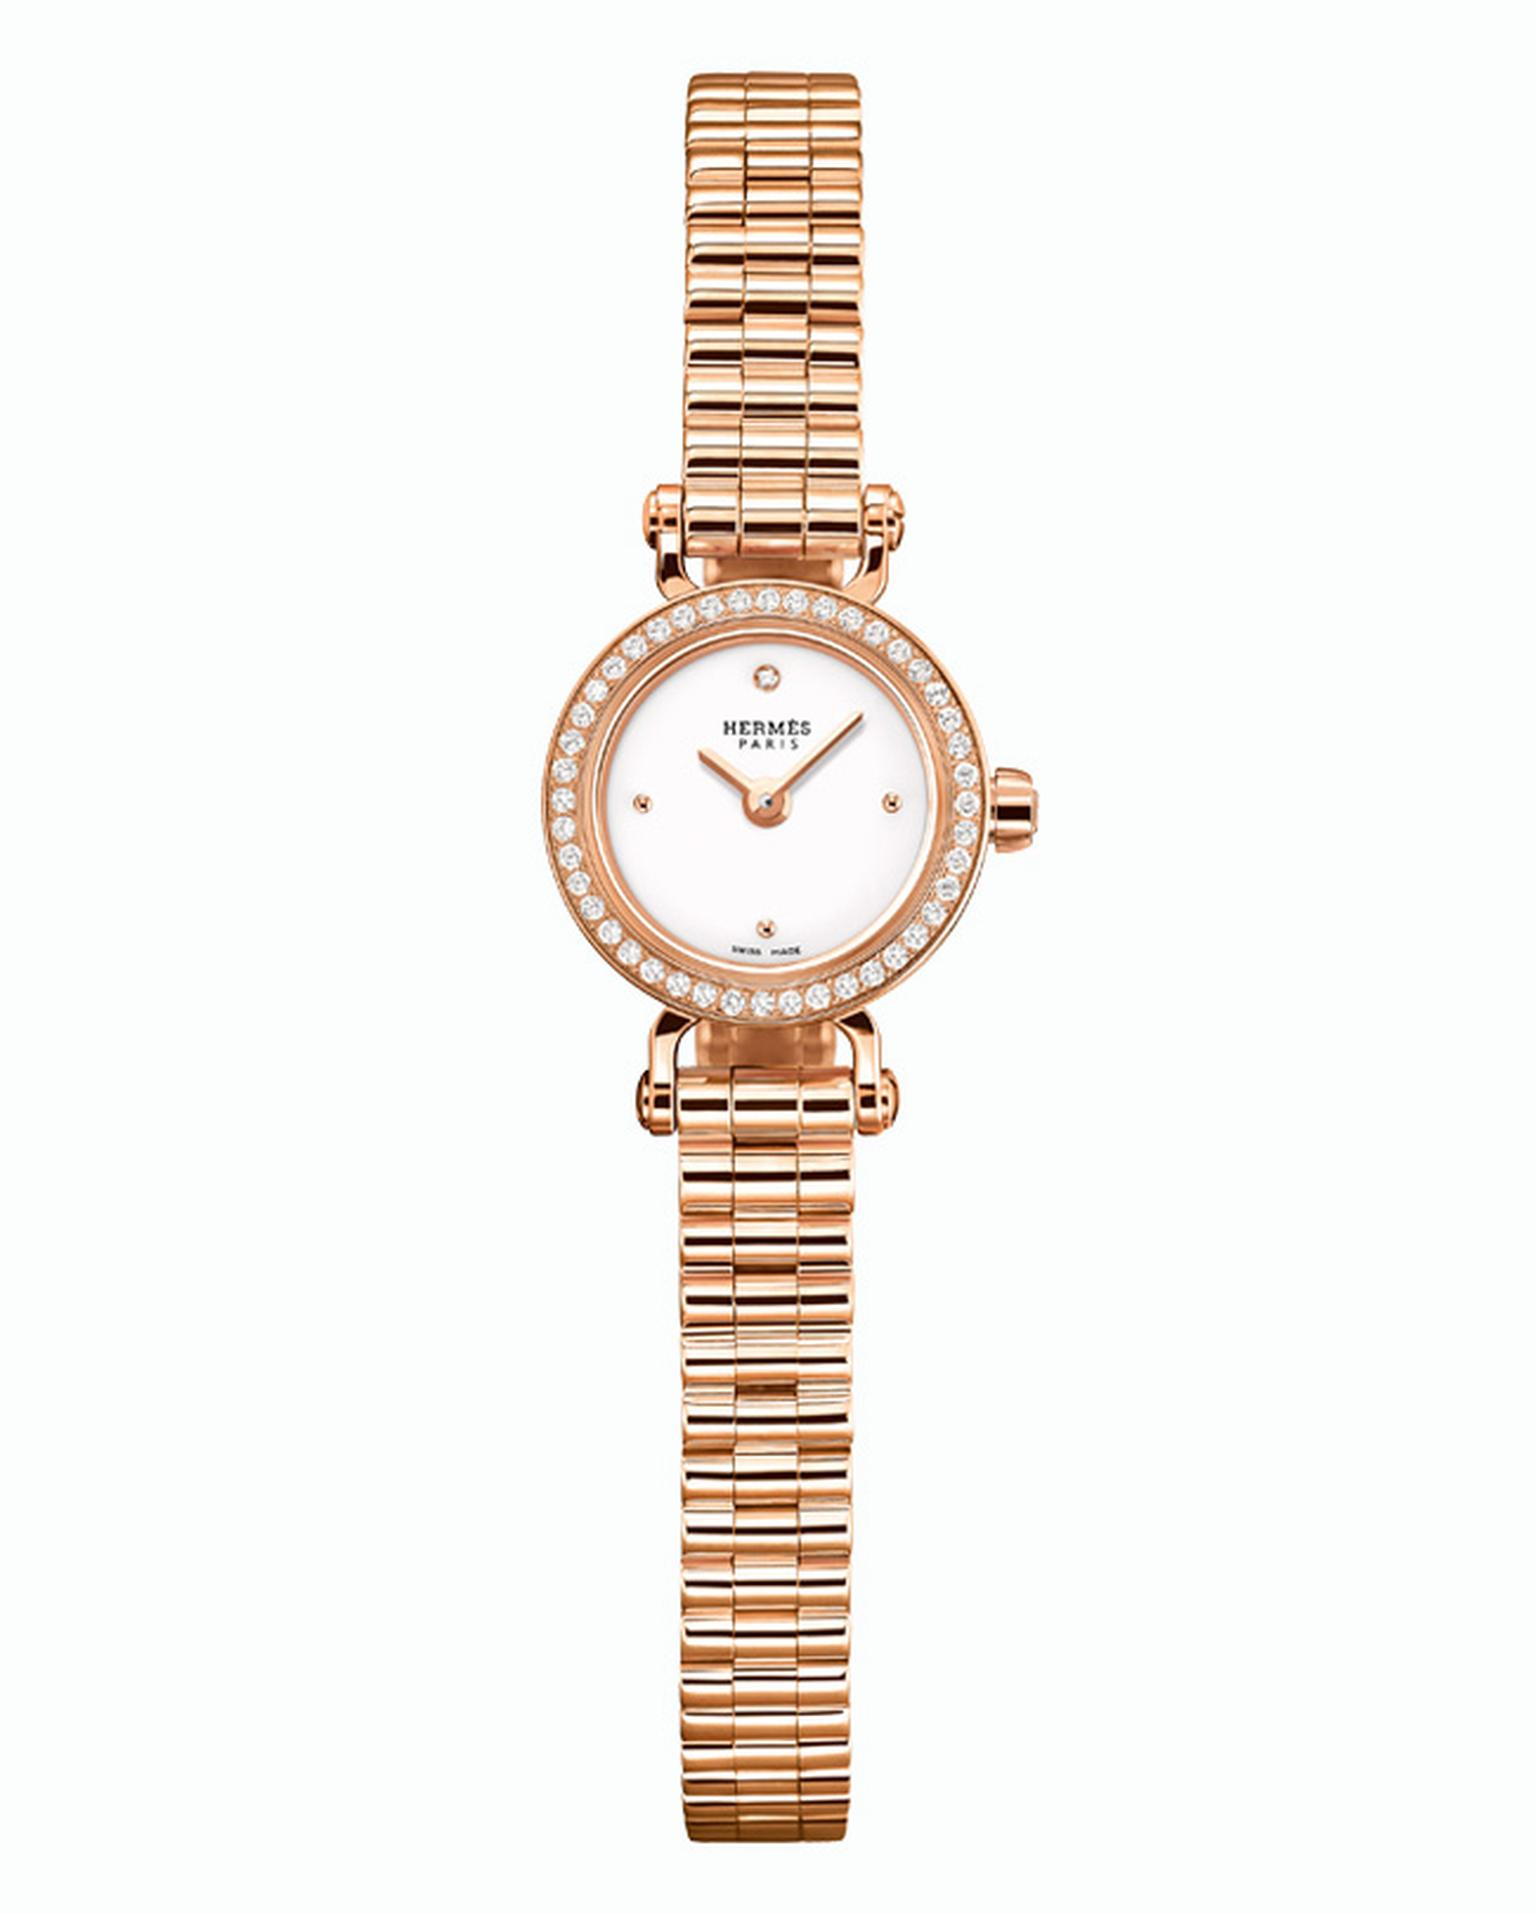 Hermes Faubourg watch in rose gold with diamonds_20140131_Main